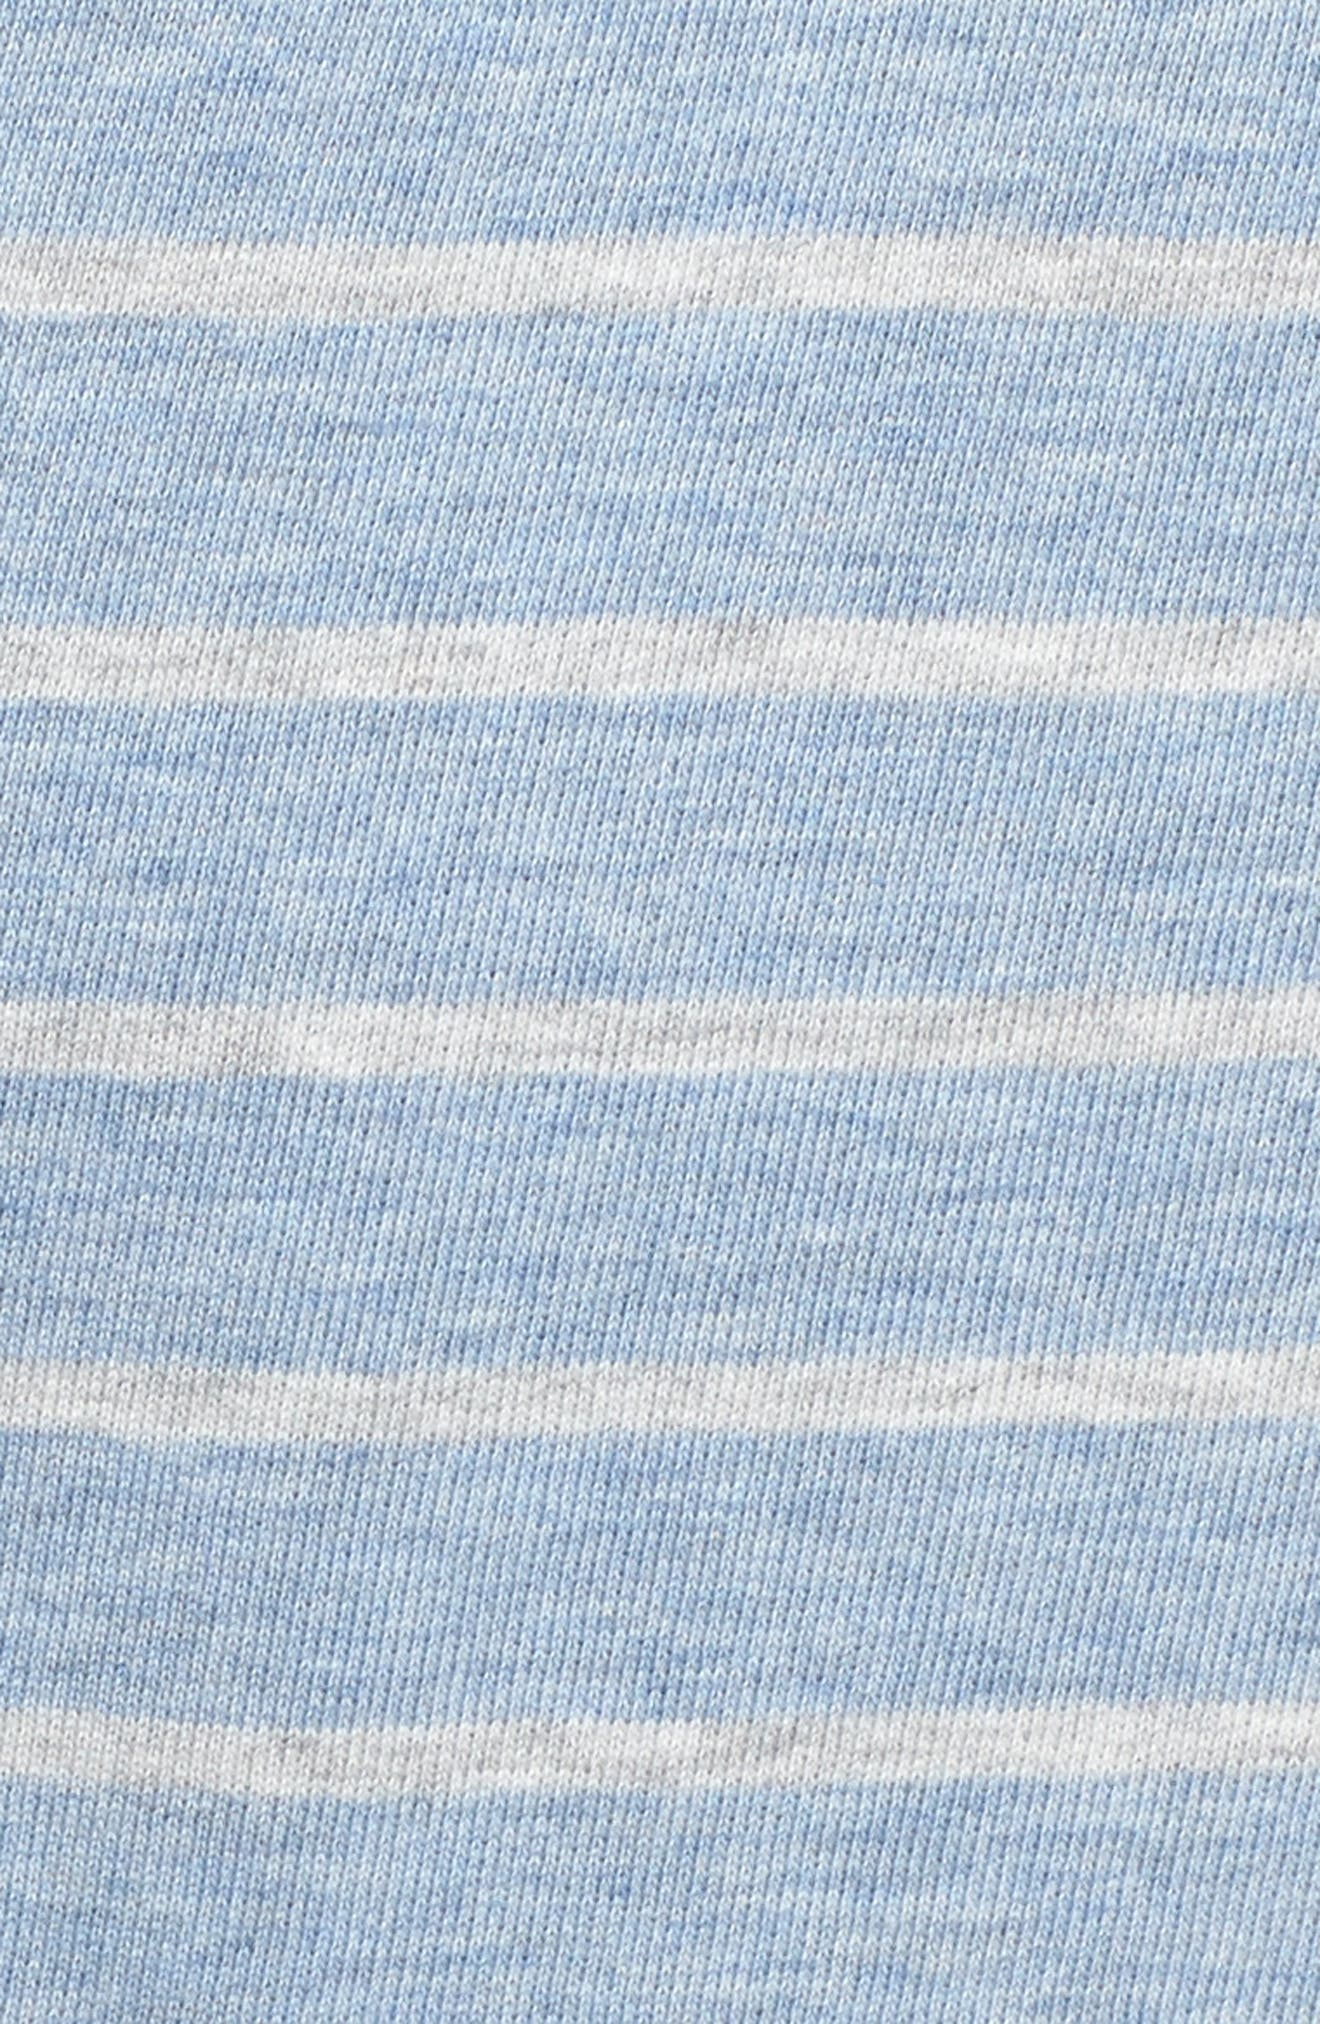 Stripe Washed Cotton Pullover Hoodie,                             Alternate thumbnail 5, color,                             Summer Evening